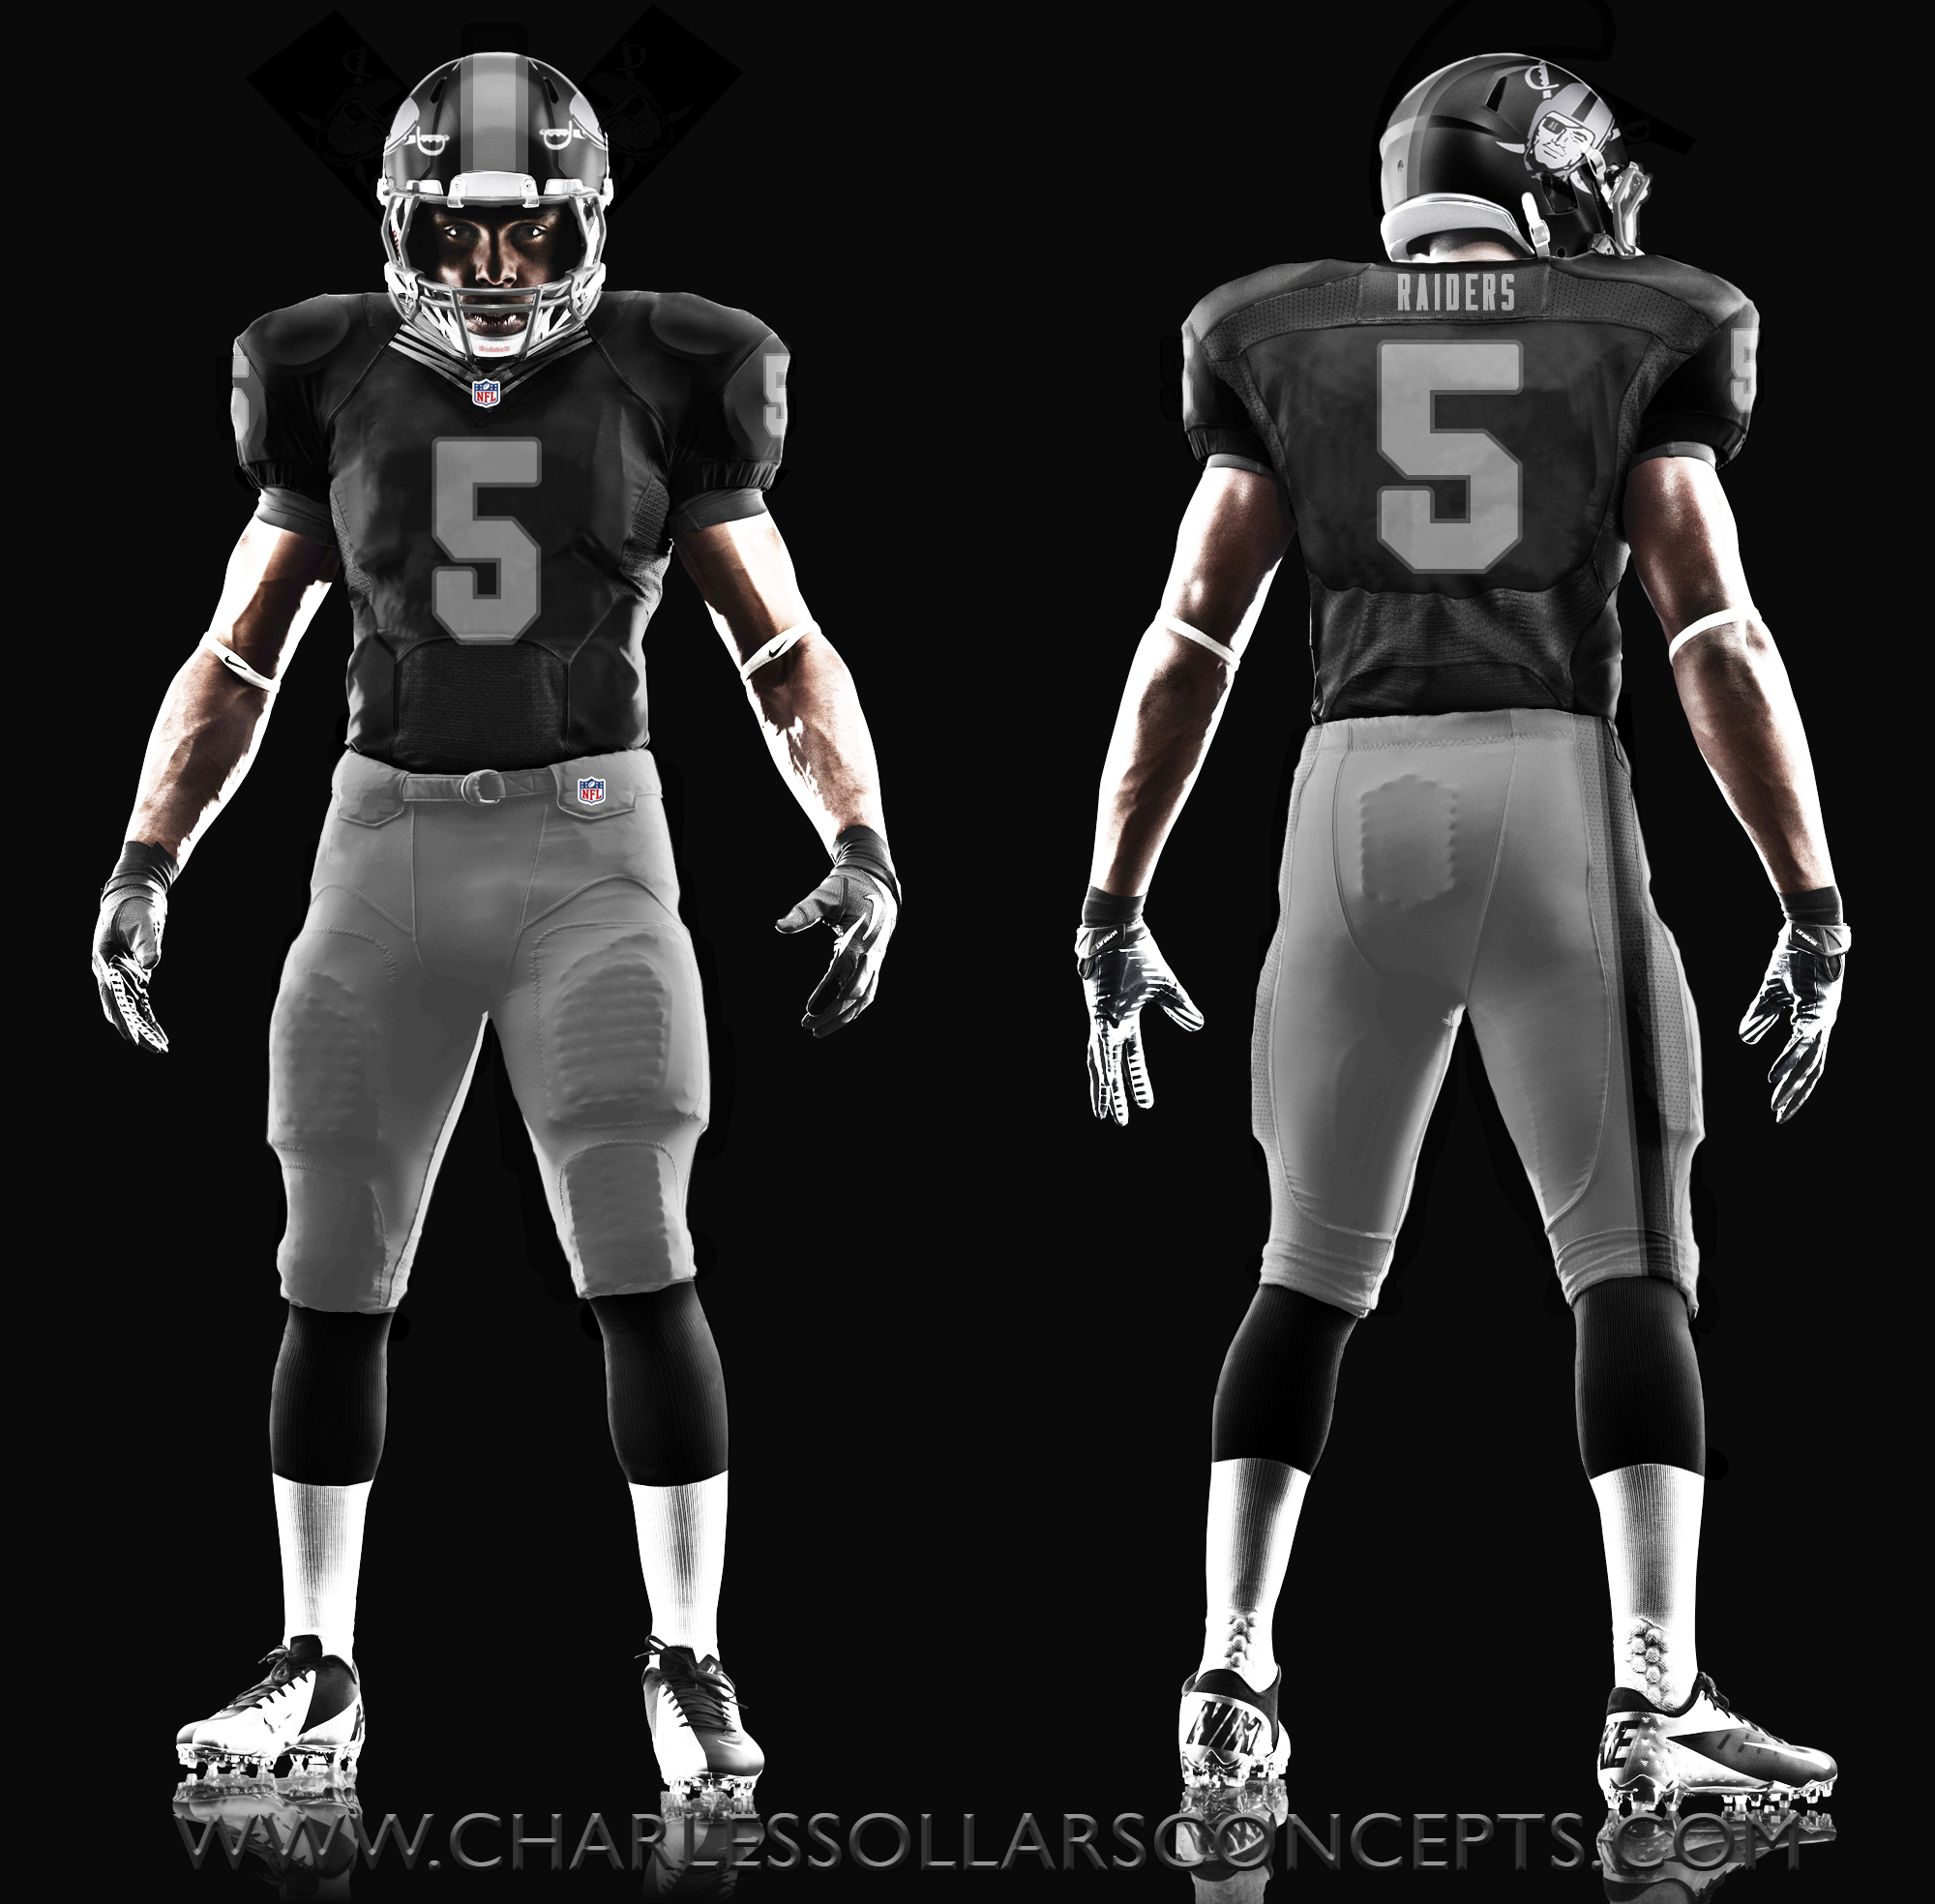 Raiders New Uniforms 2014 Raiders uni 3